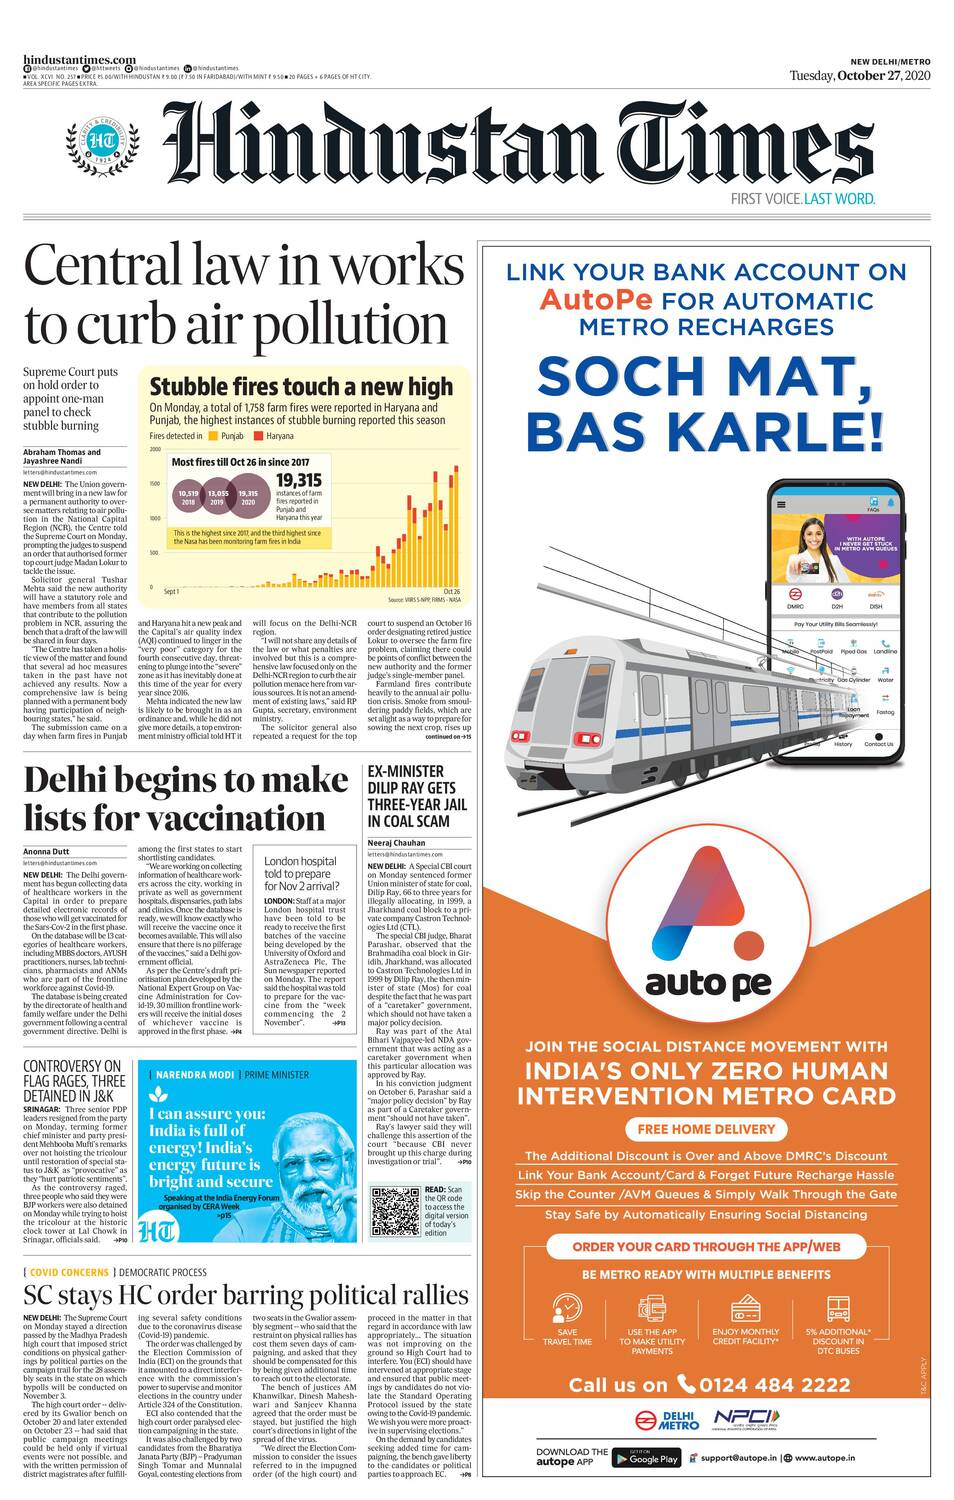 Newspaper Headlines: Will Bring Law To Tackle Pollution, Centre Tells Supreme Court And Other Top Stories